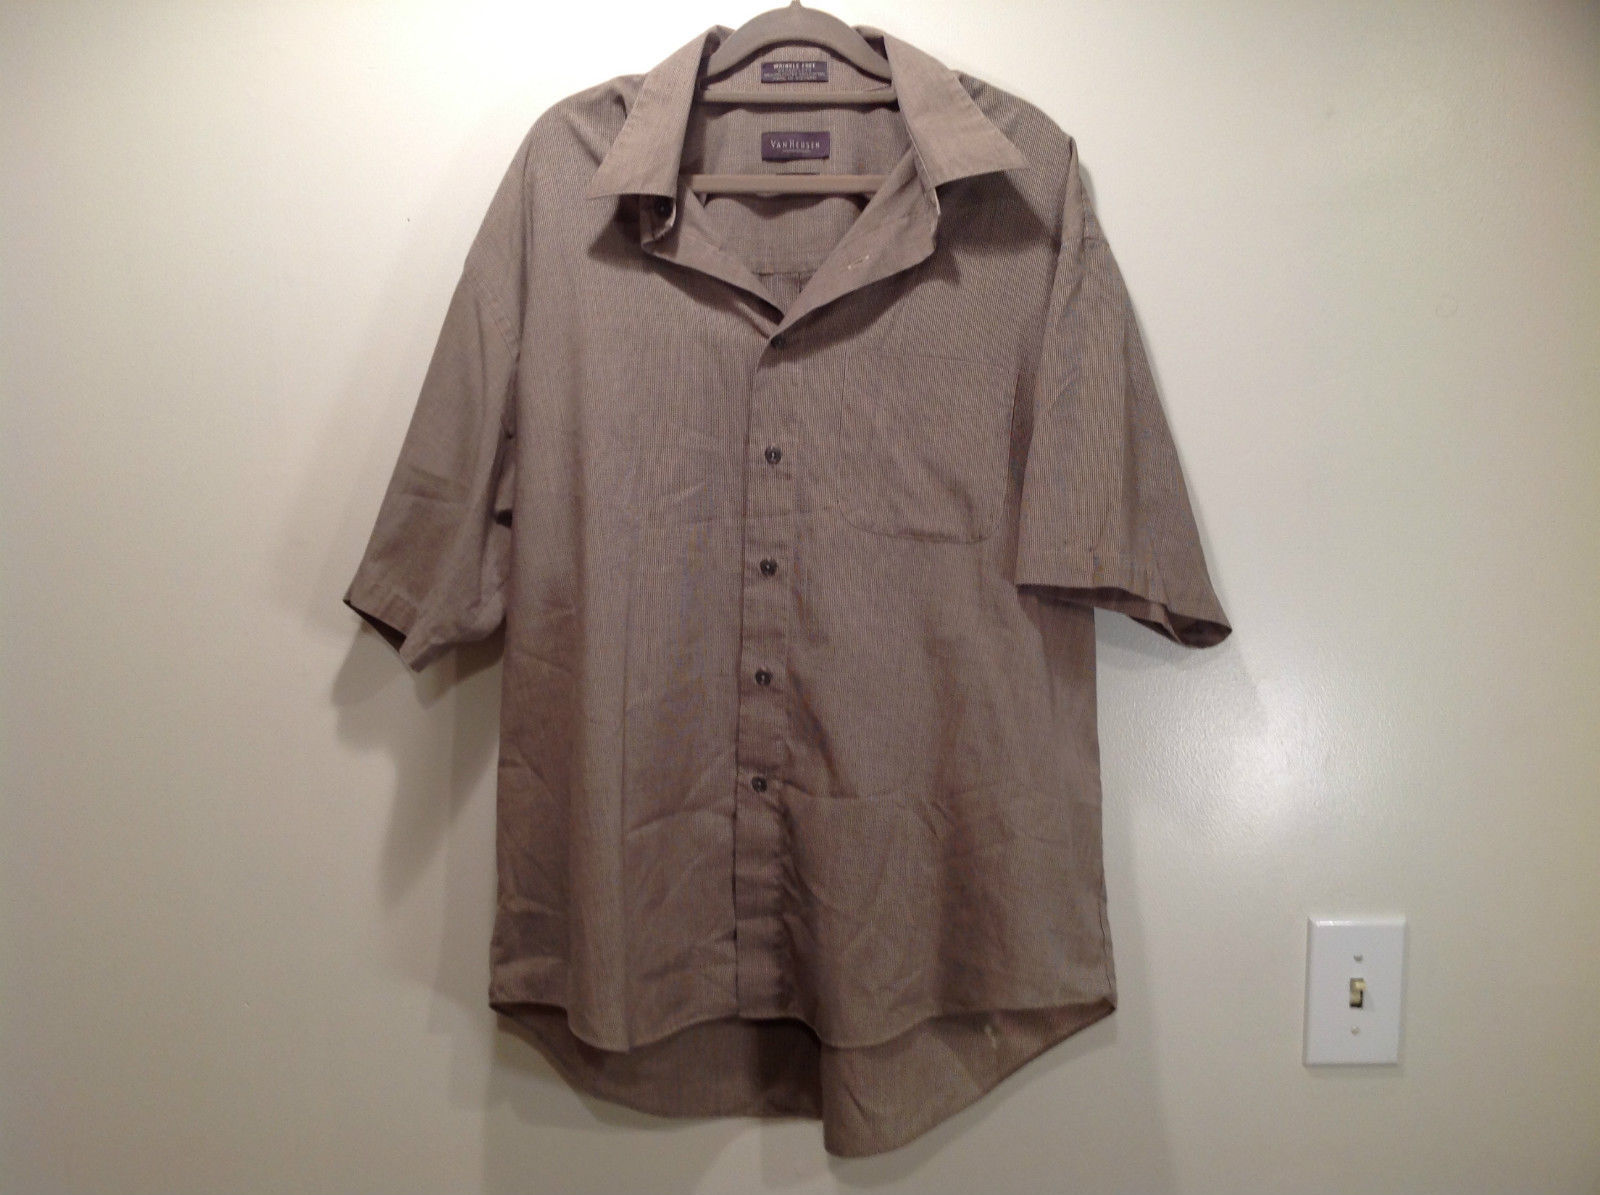 VanHeusen Gray Patterned Short Sleeve Wrinkle Free Shirt Size 16 to 16.5